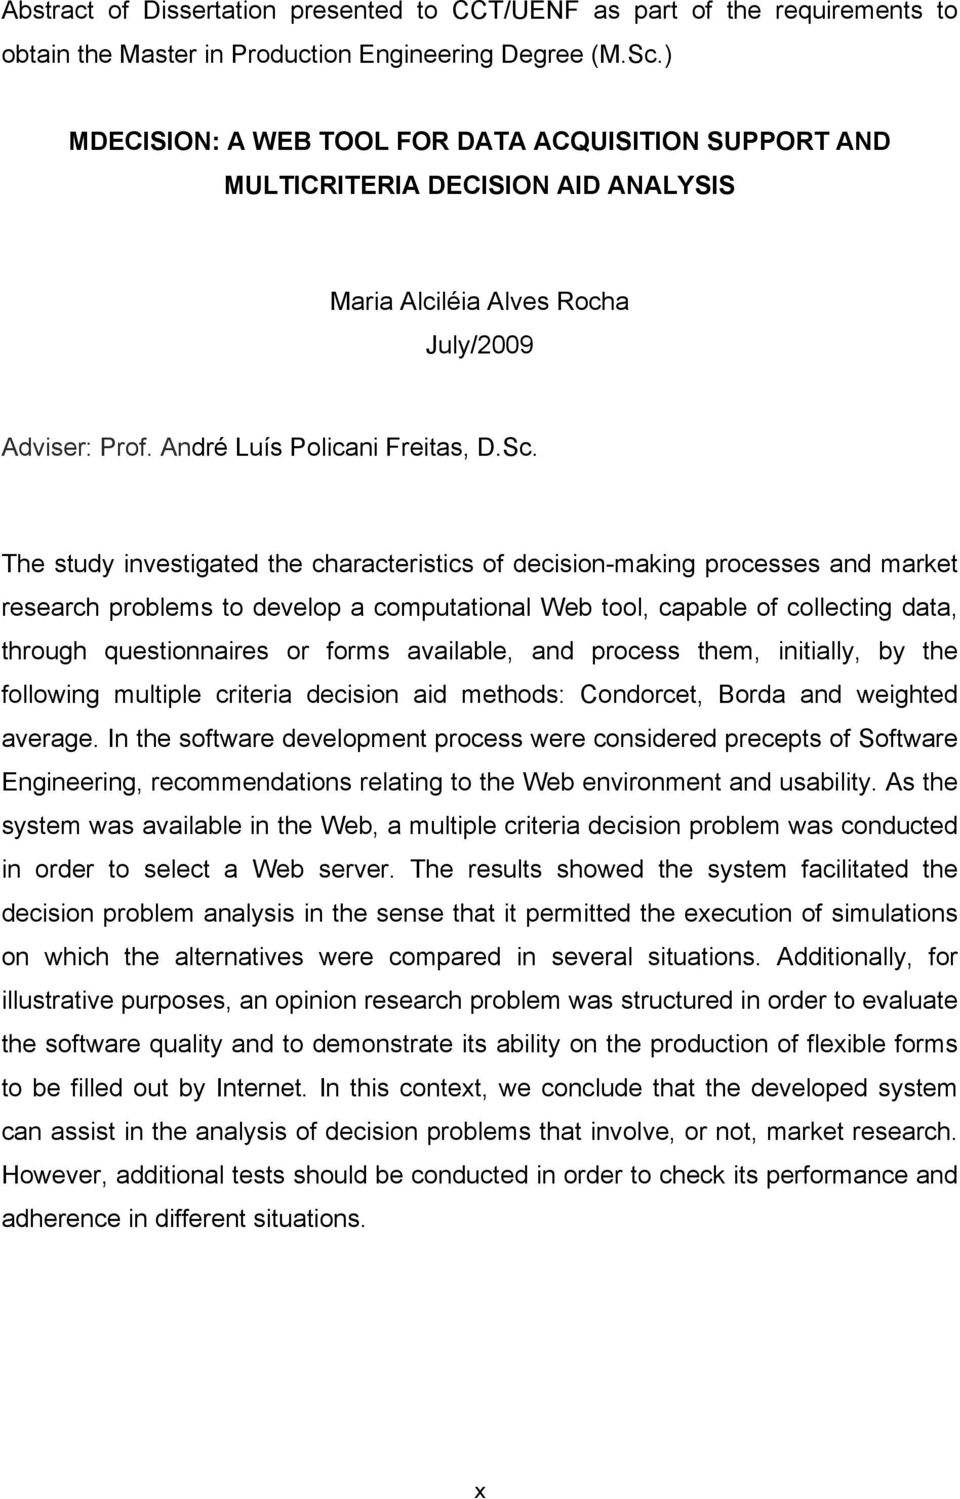 The study investigated the characteristics of decision-making processes and market research problems to develop a computational Web tool, capable of collecting data, through questionnaires or forms